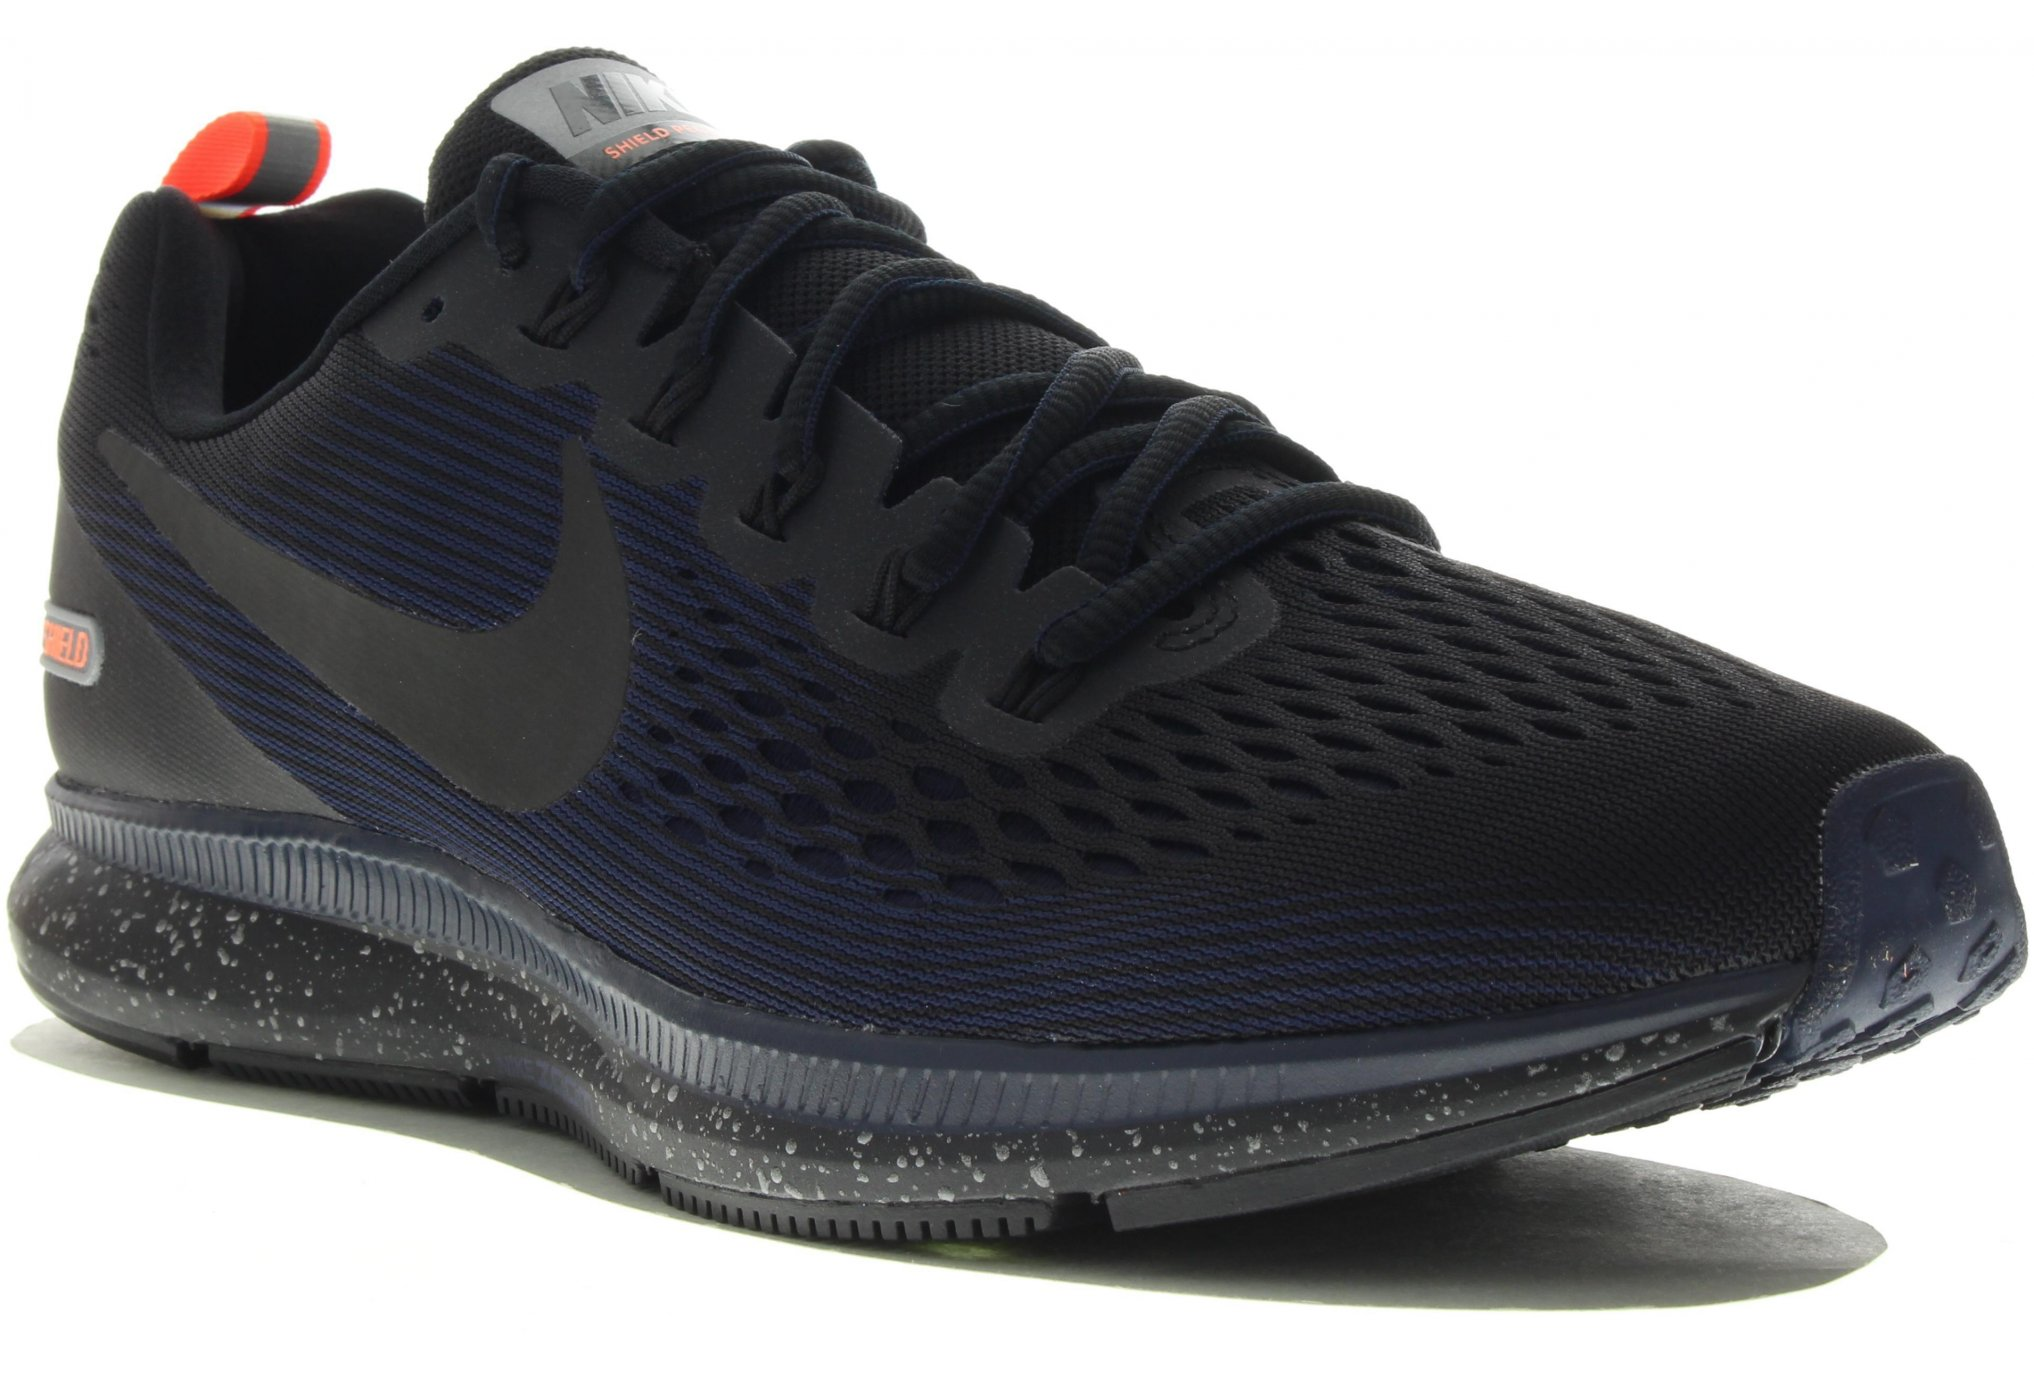 nike-air-zoom-pegasus-34-shield-m-chaussures-homme-185378-1-fz